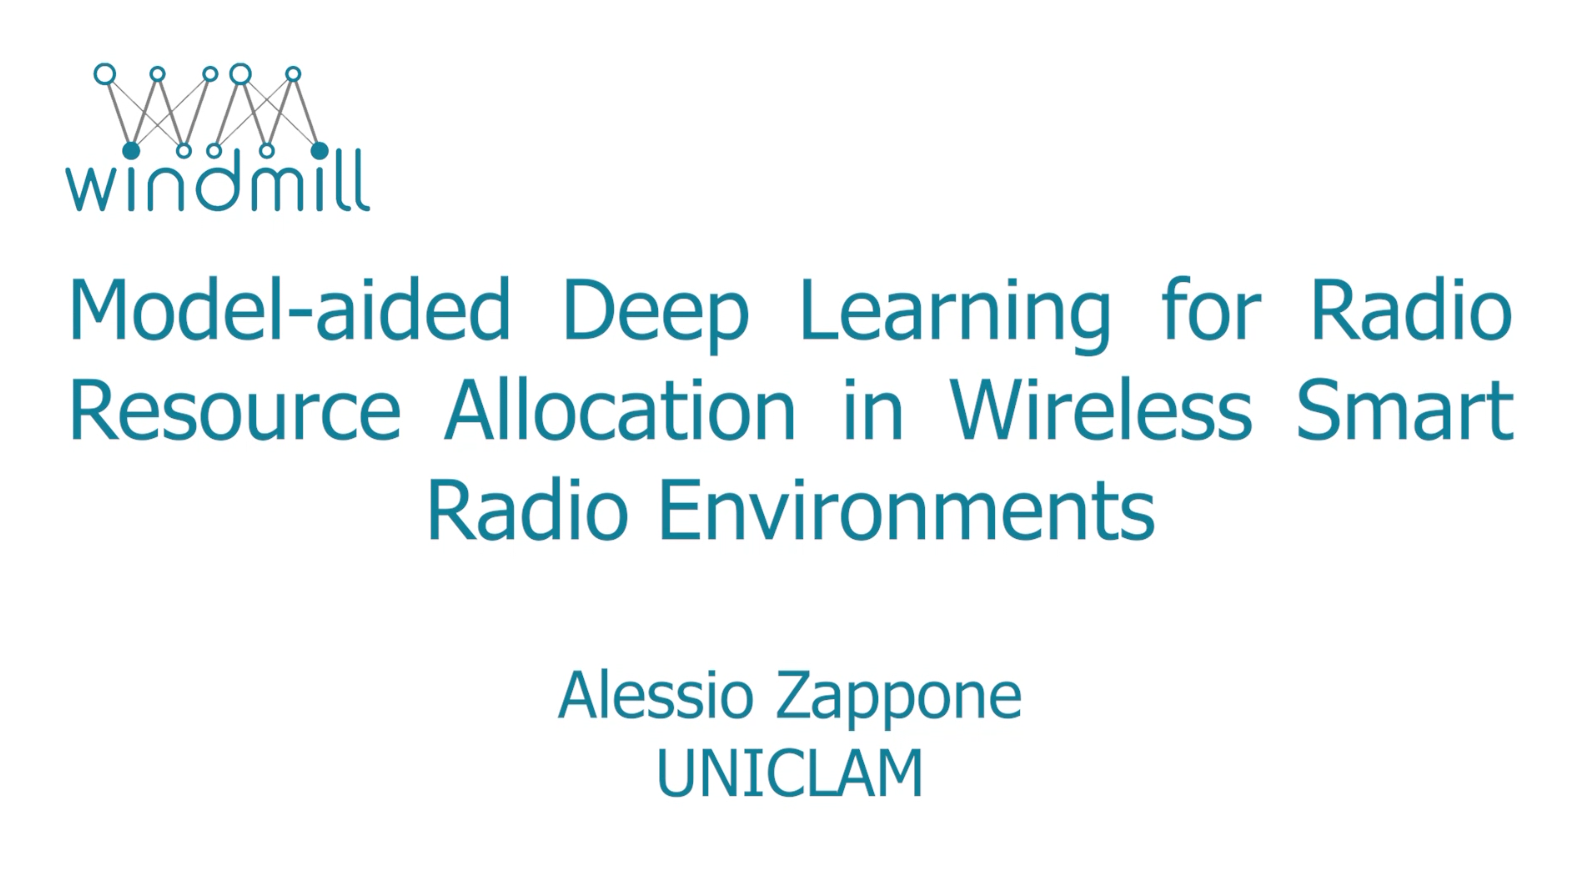 Model-aided Deep Learning for Radio Resource Allocation in Wireless Smart Radio Environments